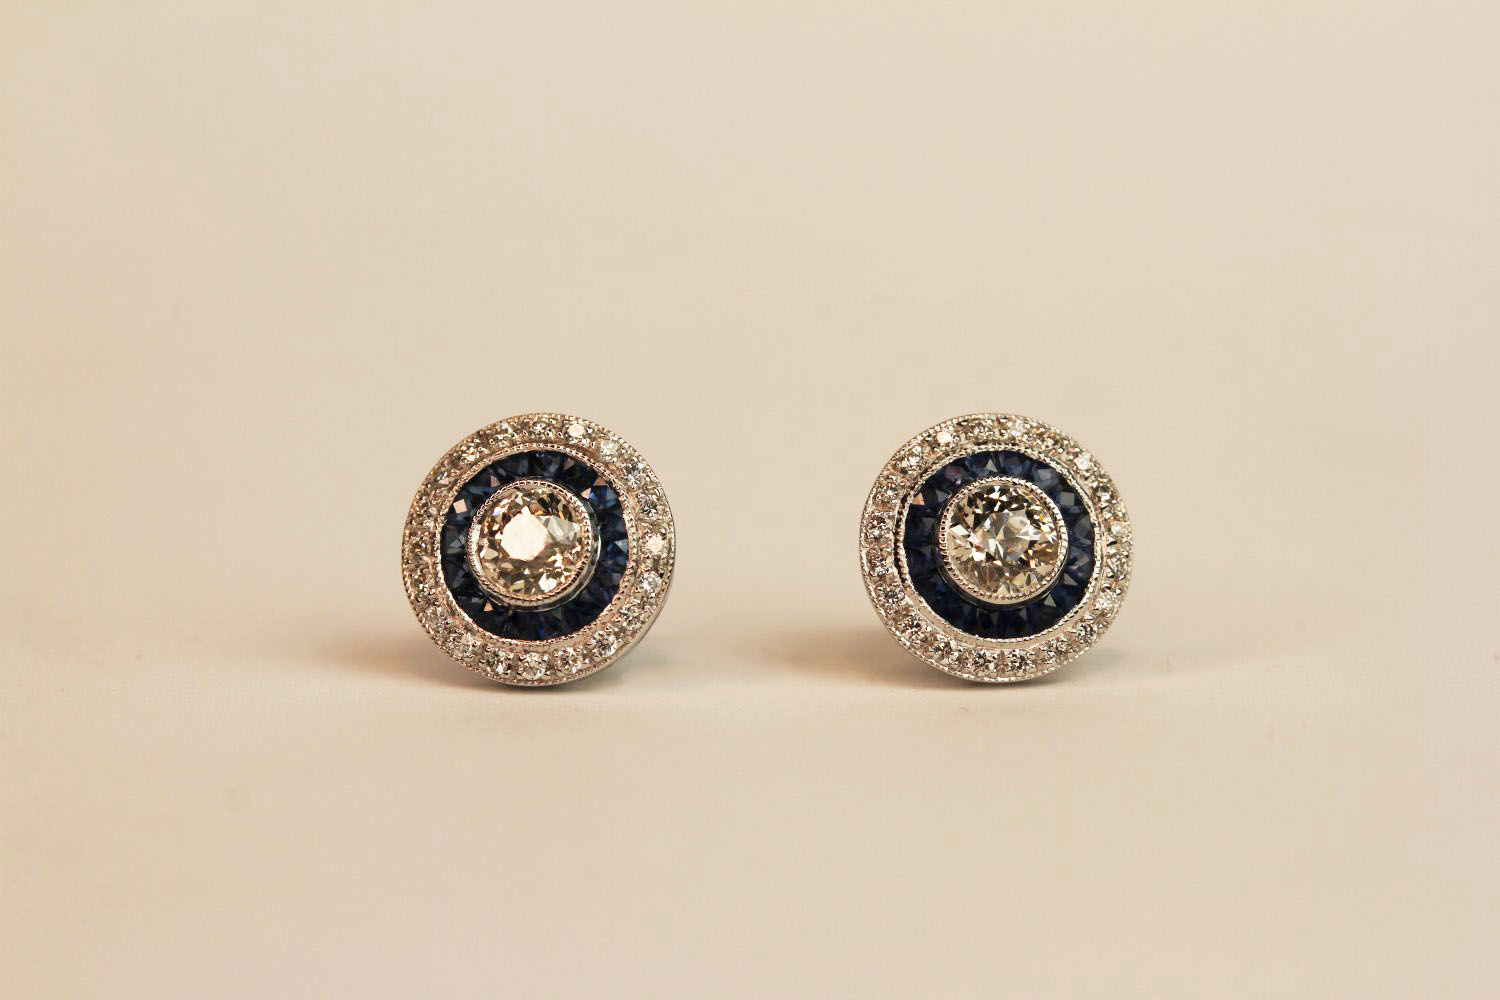 Pair of 18ct white gold old-cut diamond and sapphire target-style studs, boxed. Total carat weights: